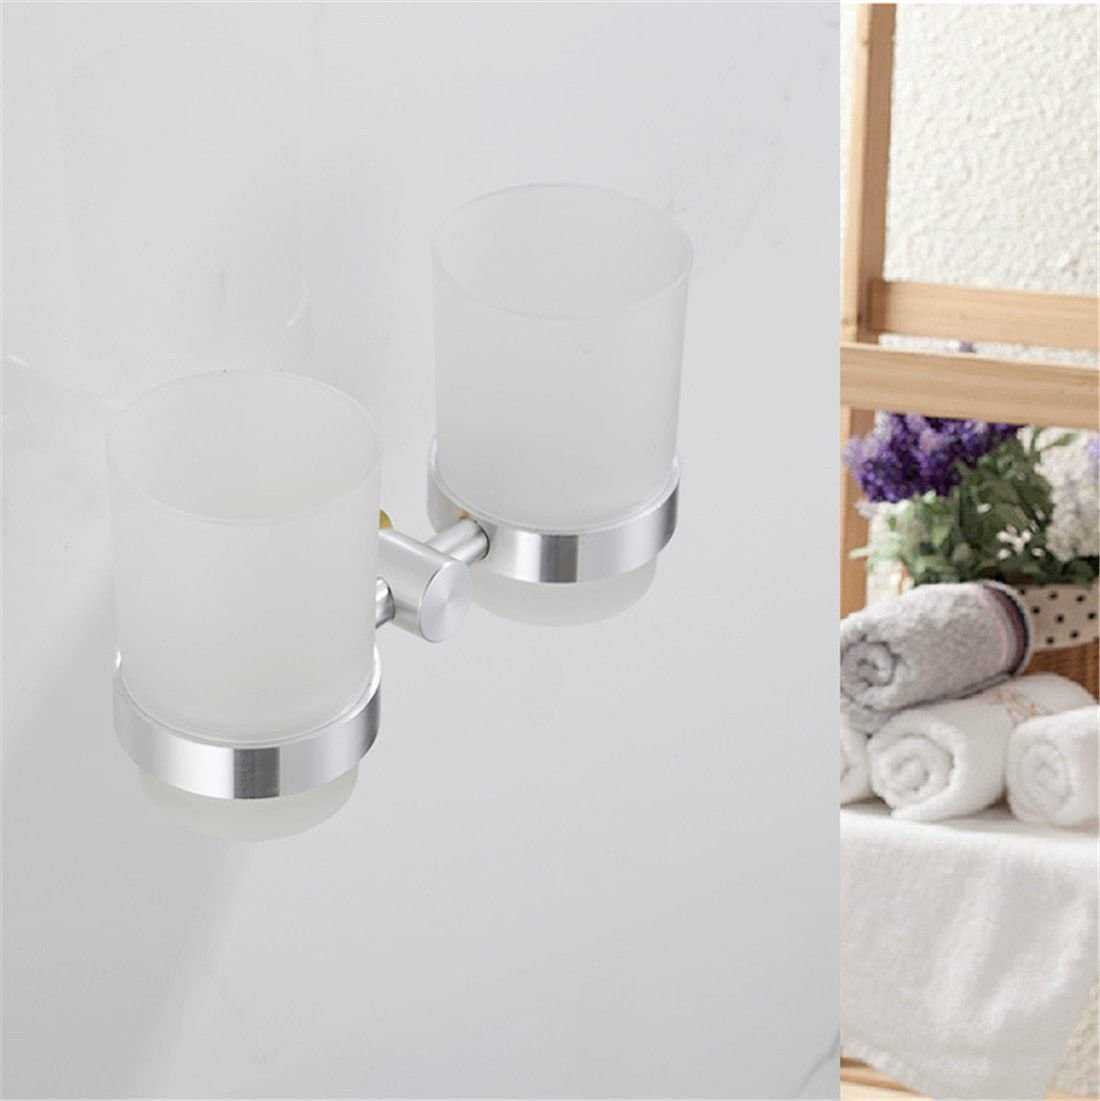 AiRobin-Continental Brushed Space Aluminum Wall Mounted Toothbrush Cup Holder Bathroom Accessory